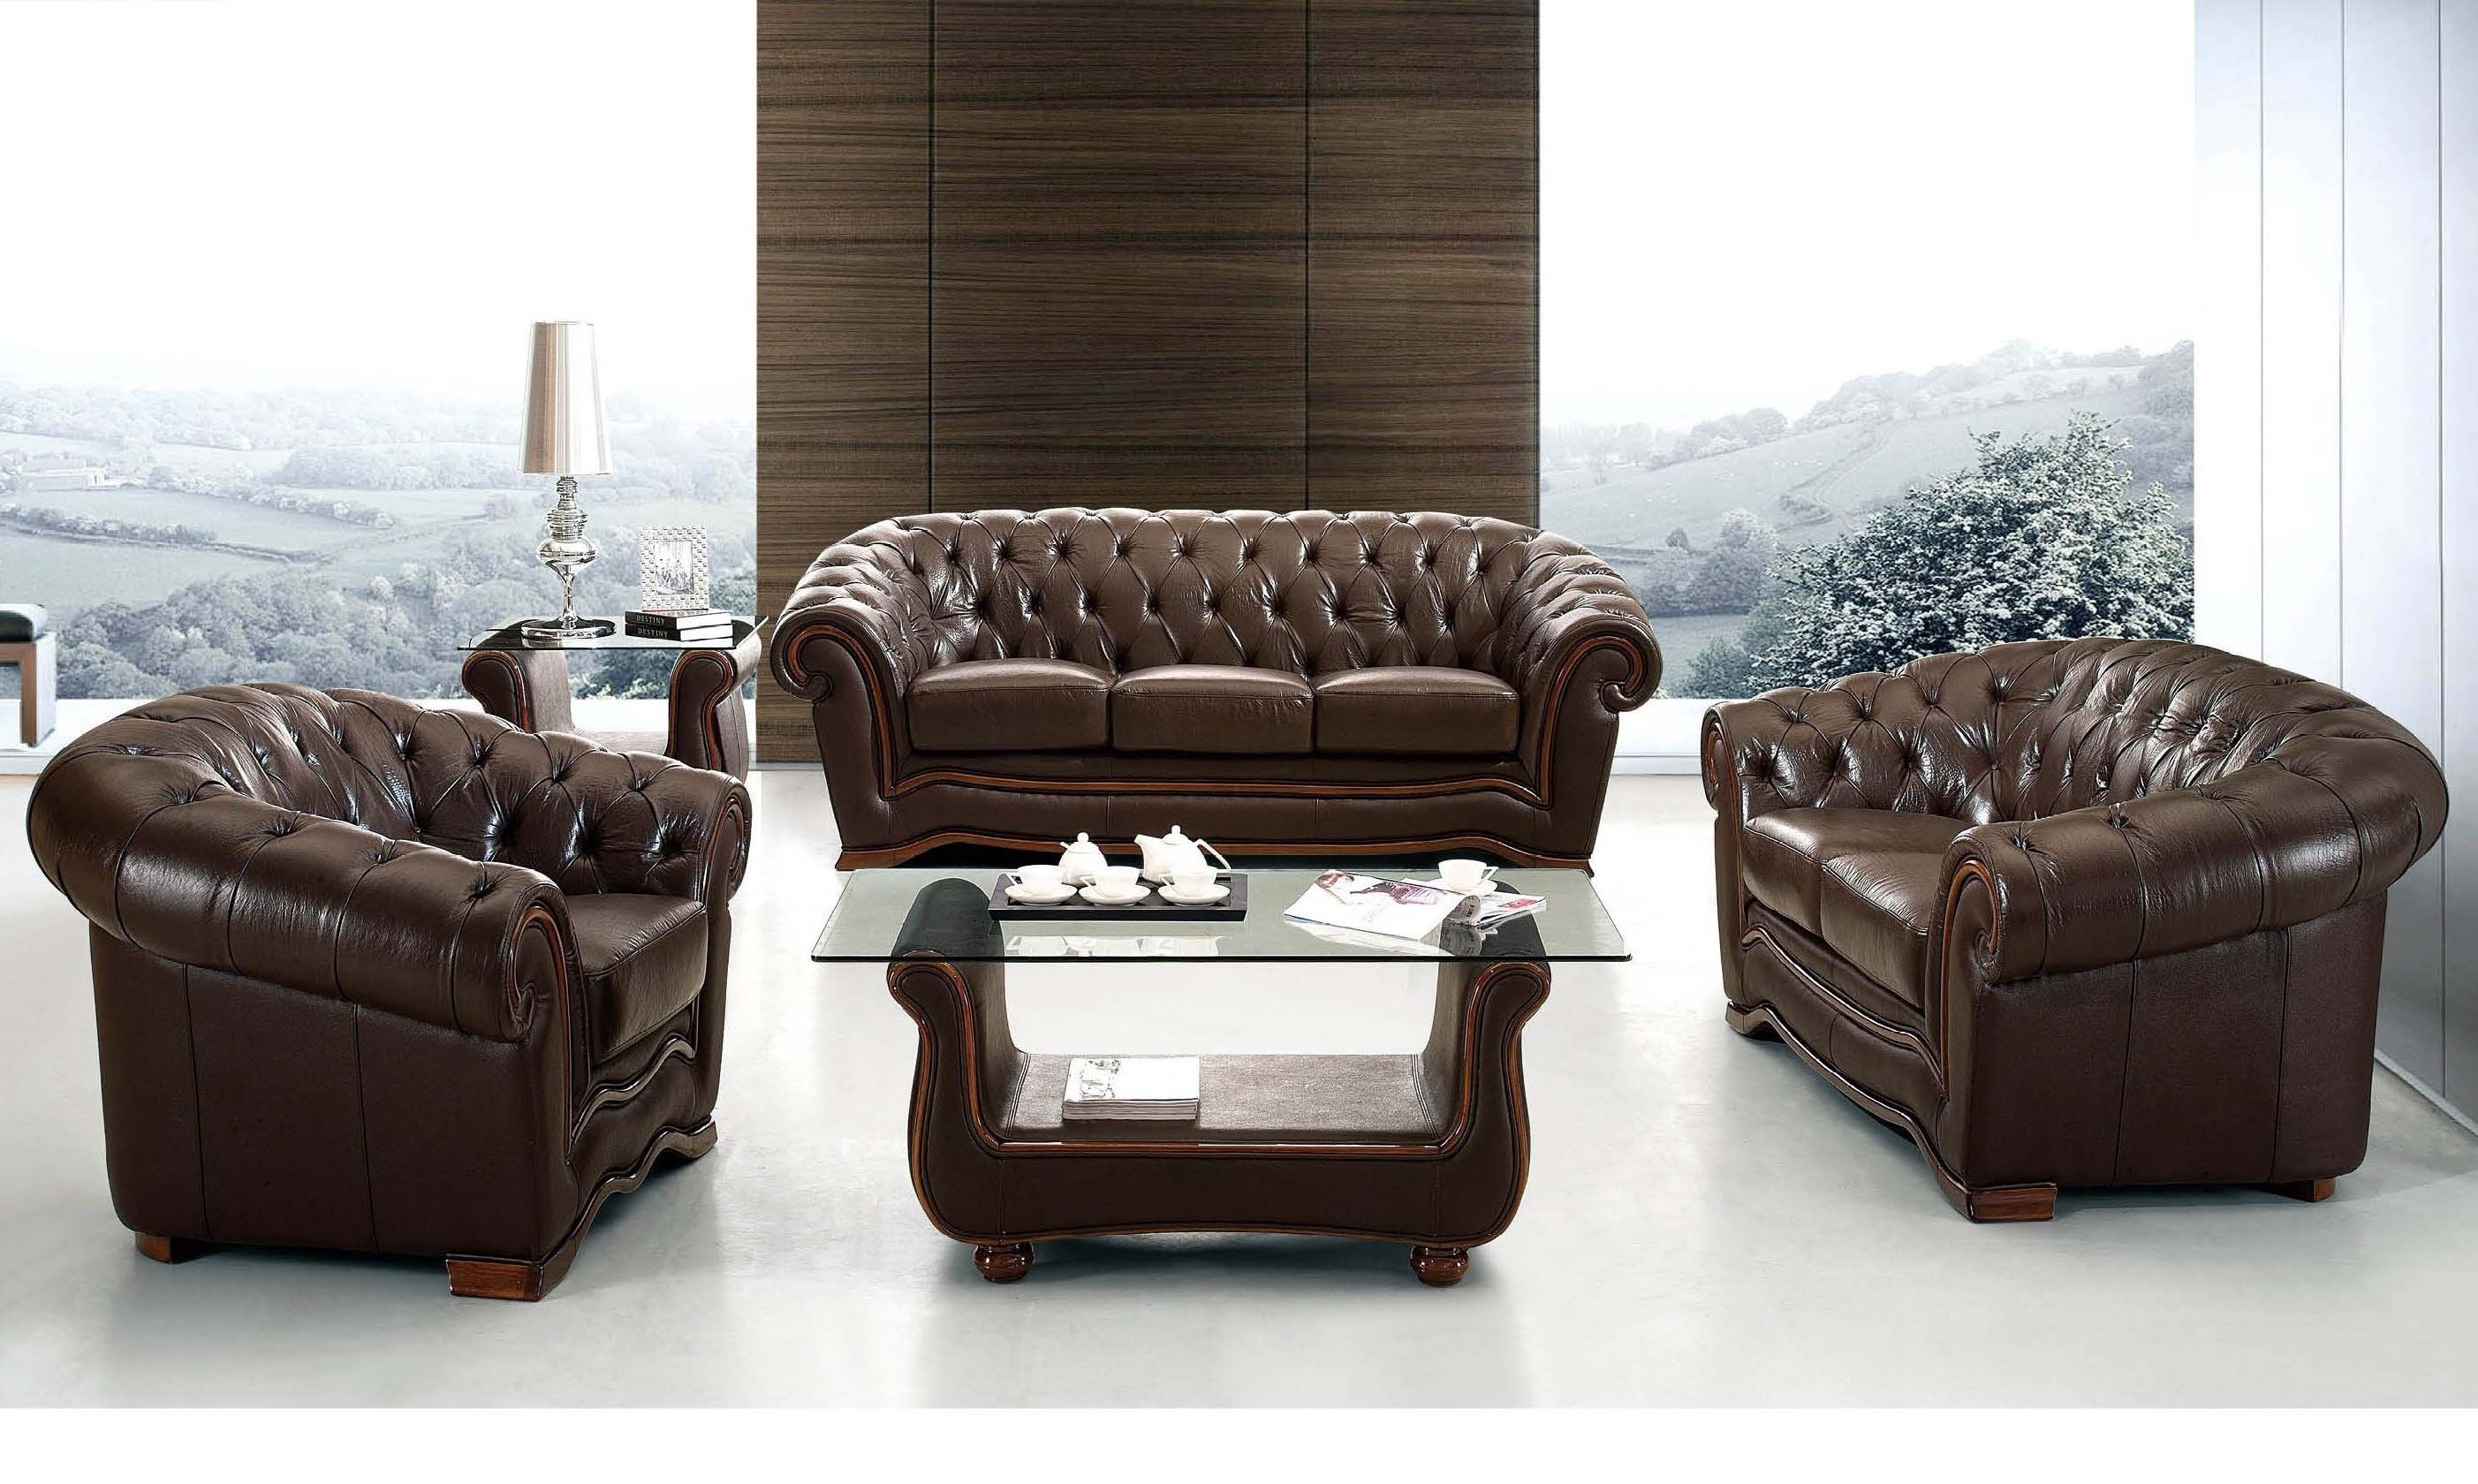 262 Leather Living Room Furniture Sofa Set Esf intended for 11 Clever Ideas How to Makeover Full Living Room Sets